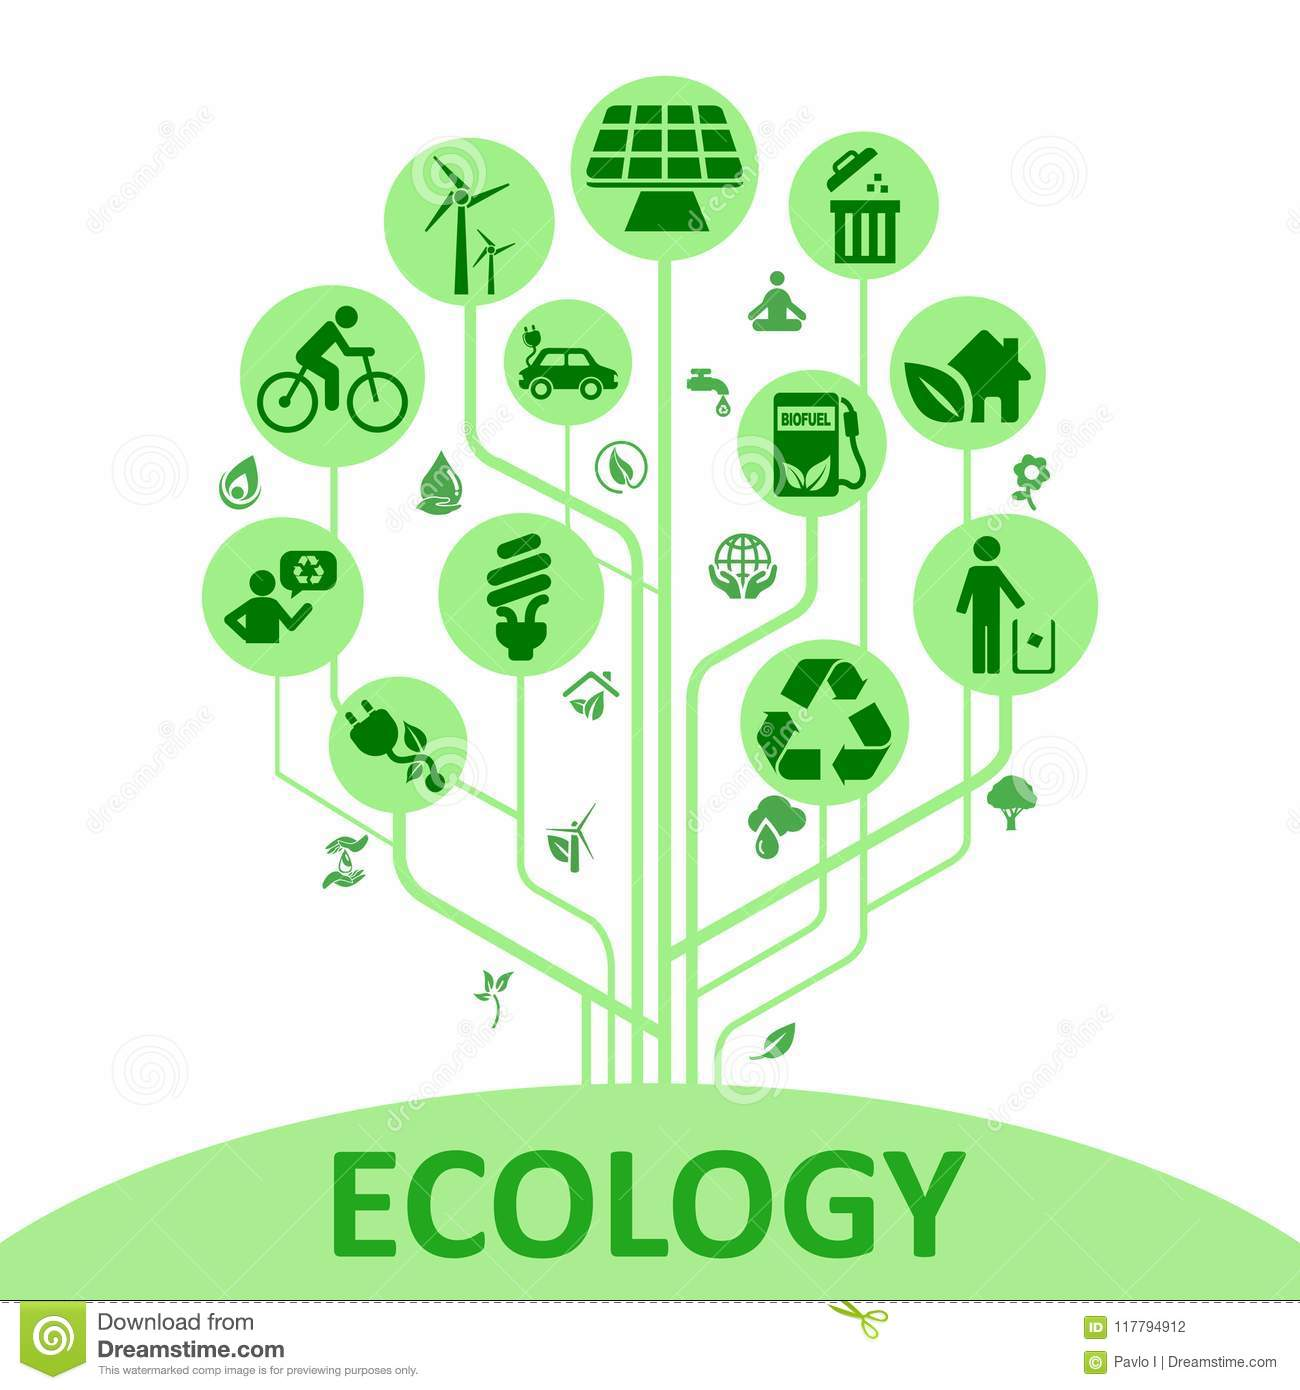 Concept ecology tree - vector